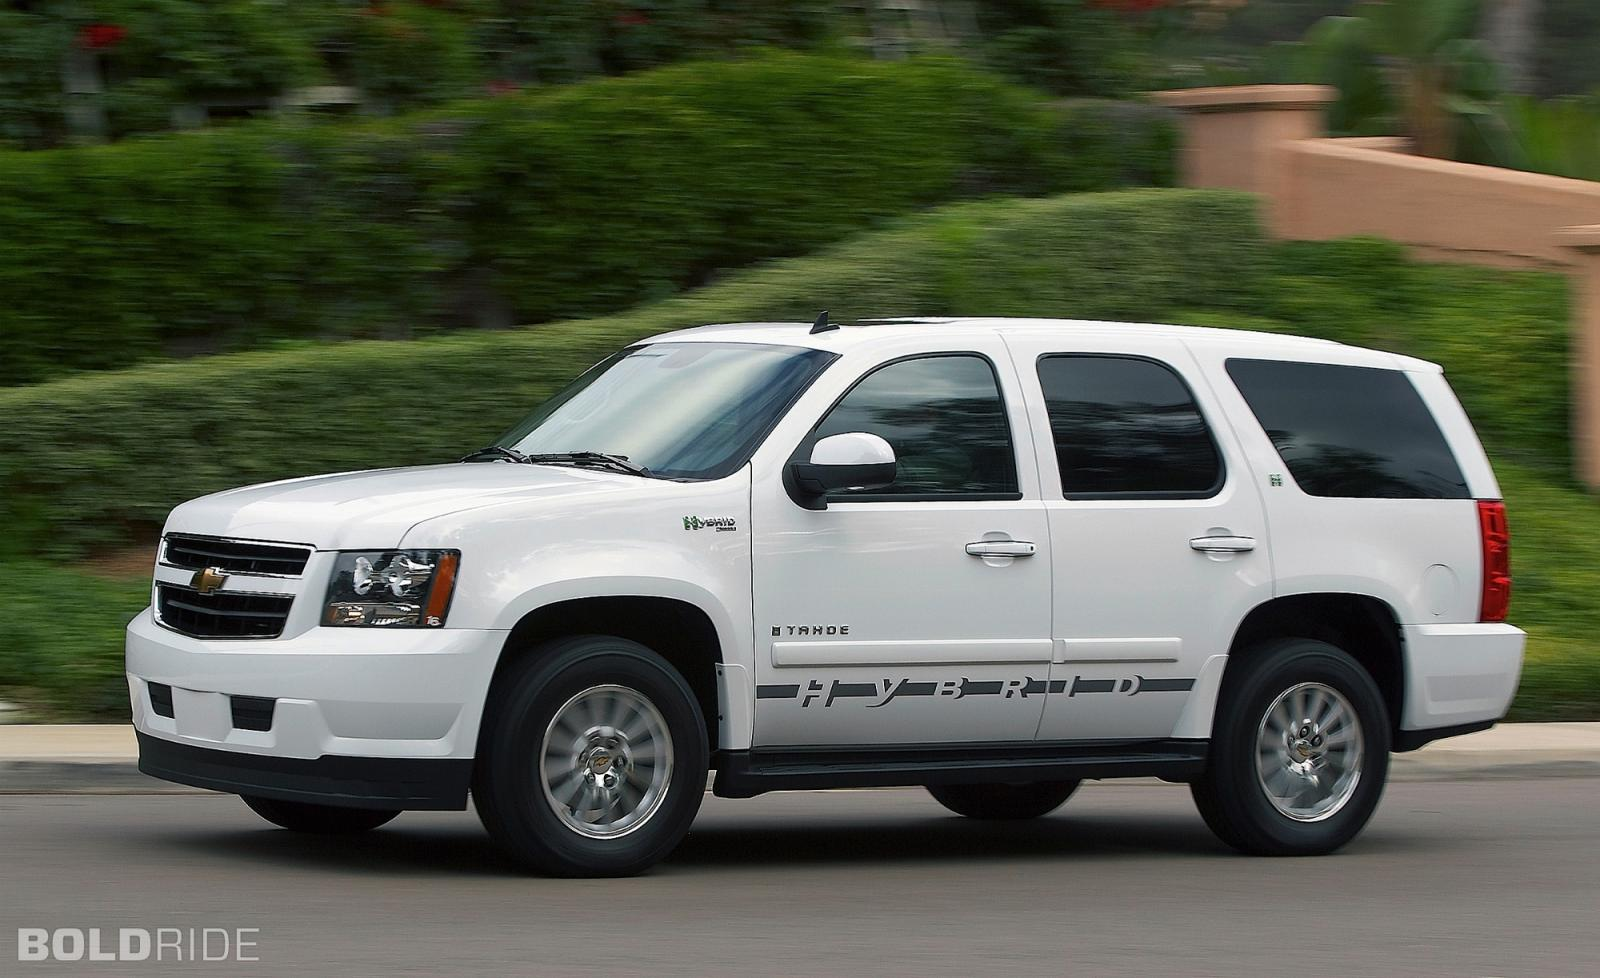 2011 chevrolet tahoe hybrid information and photos zombiedrive. Cars Review. Best American Auto & Cars Review